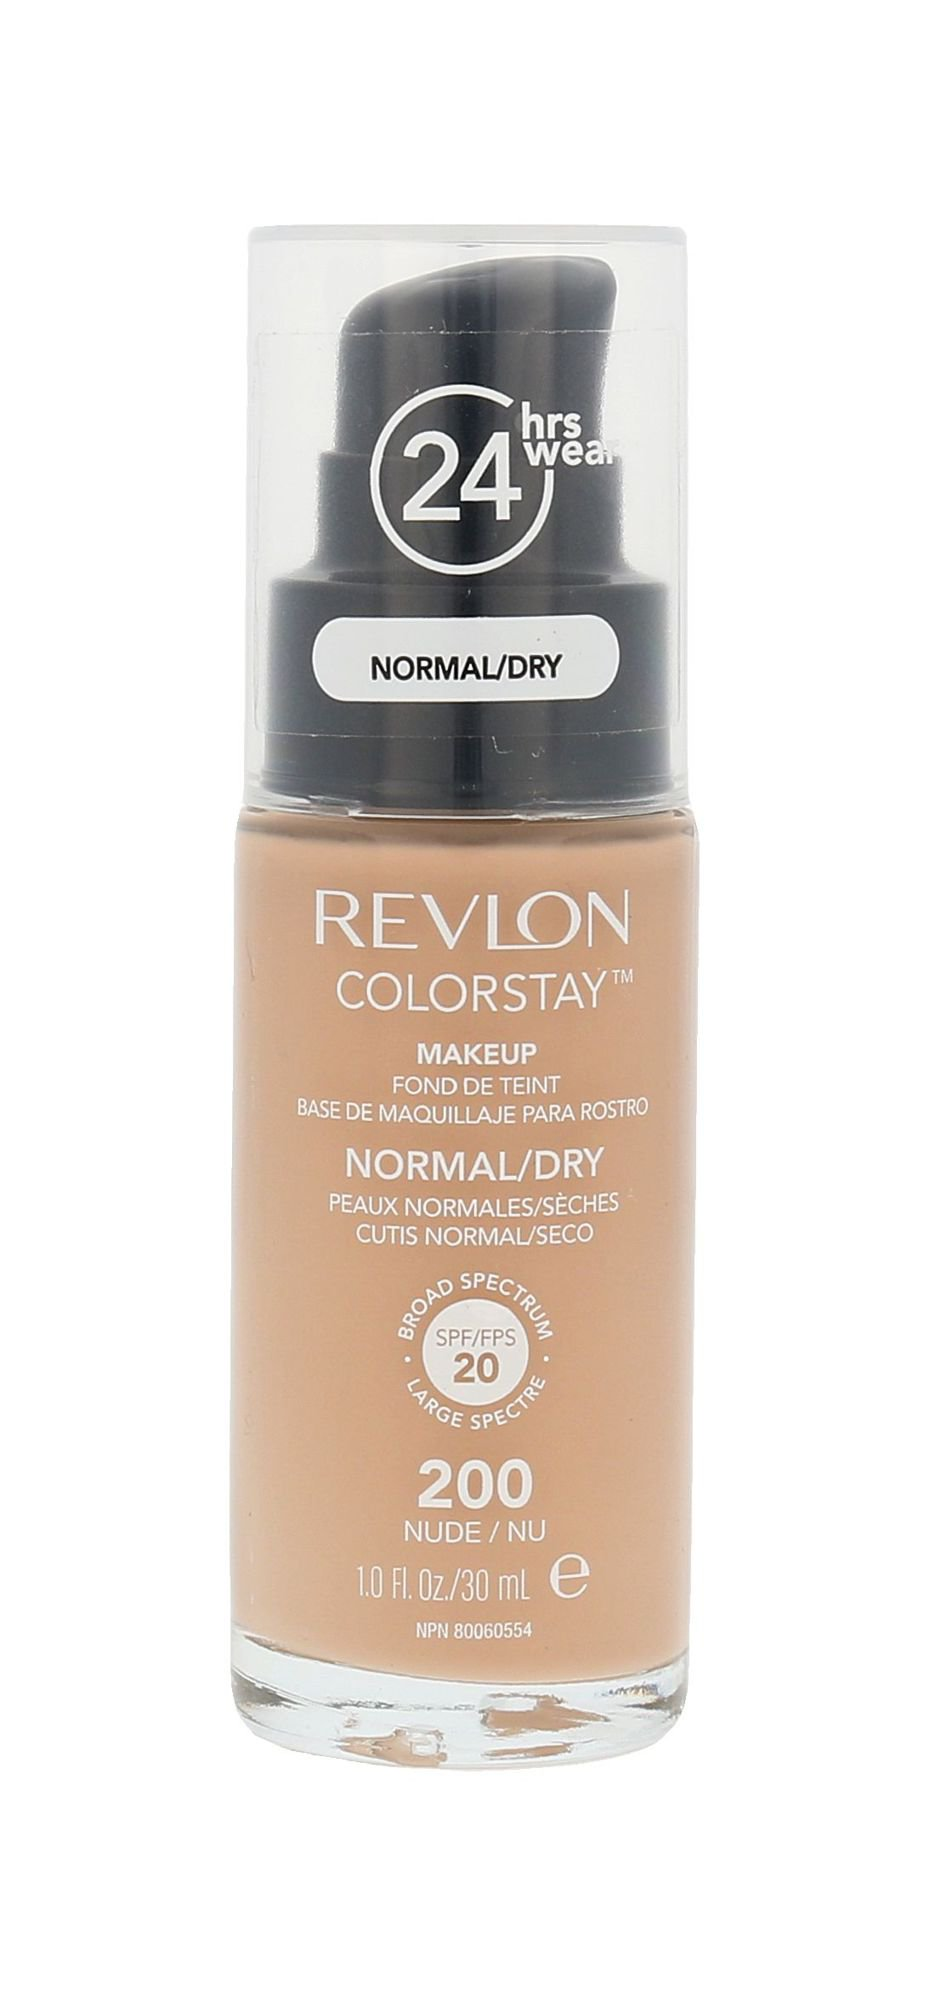 Revlon Colorstay Normal Dry Skin, Makeup 30ml